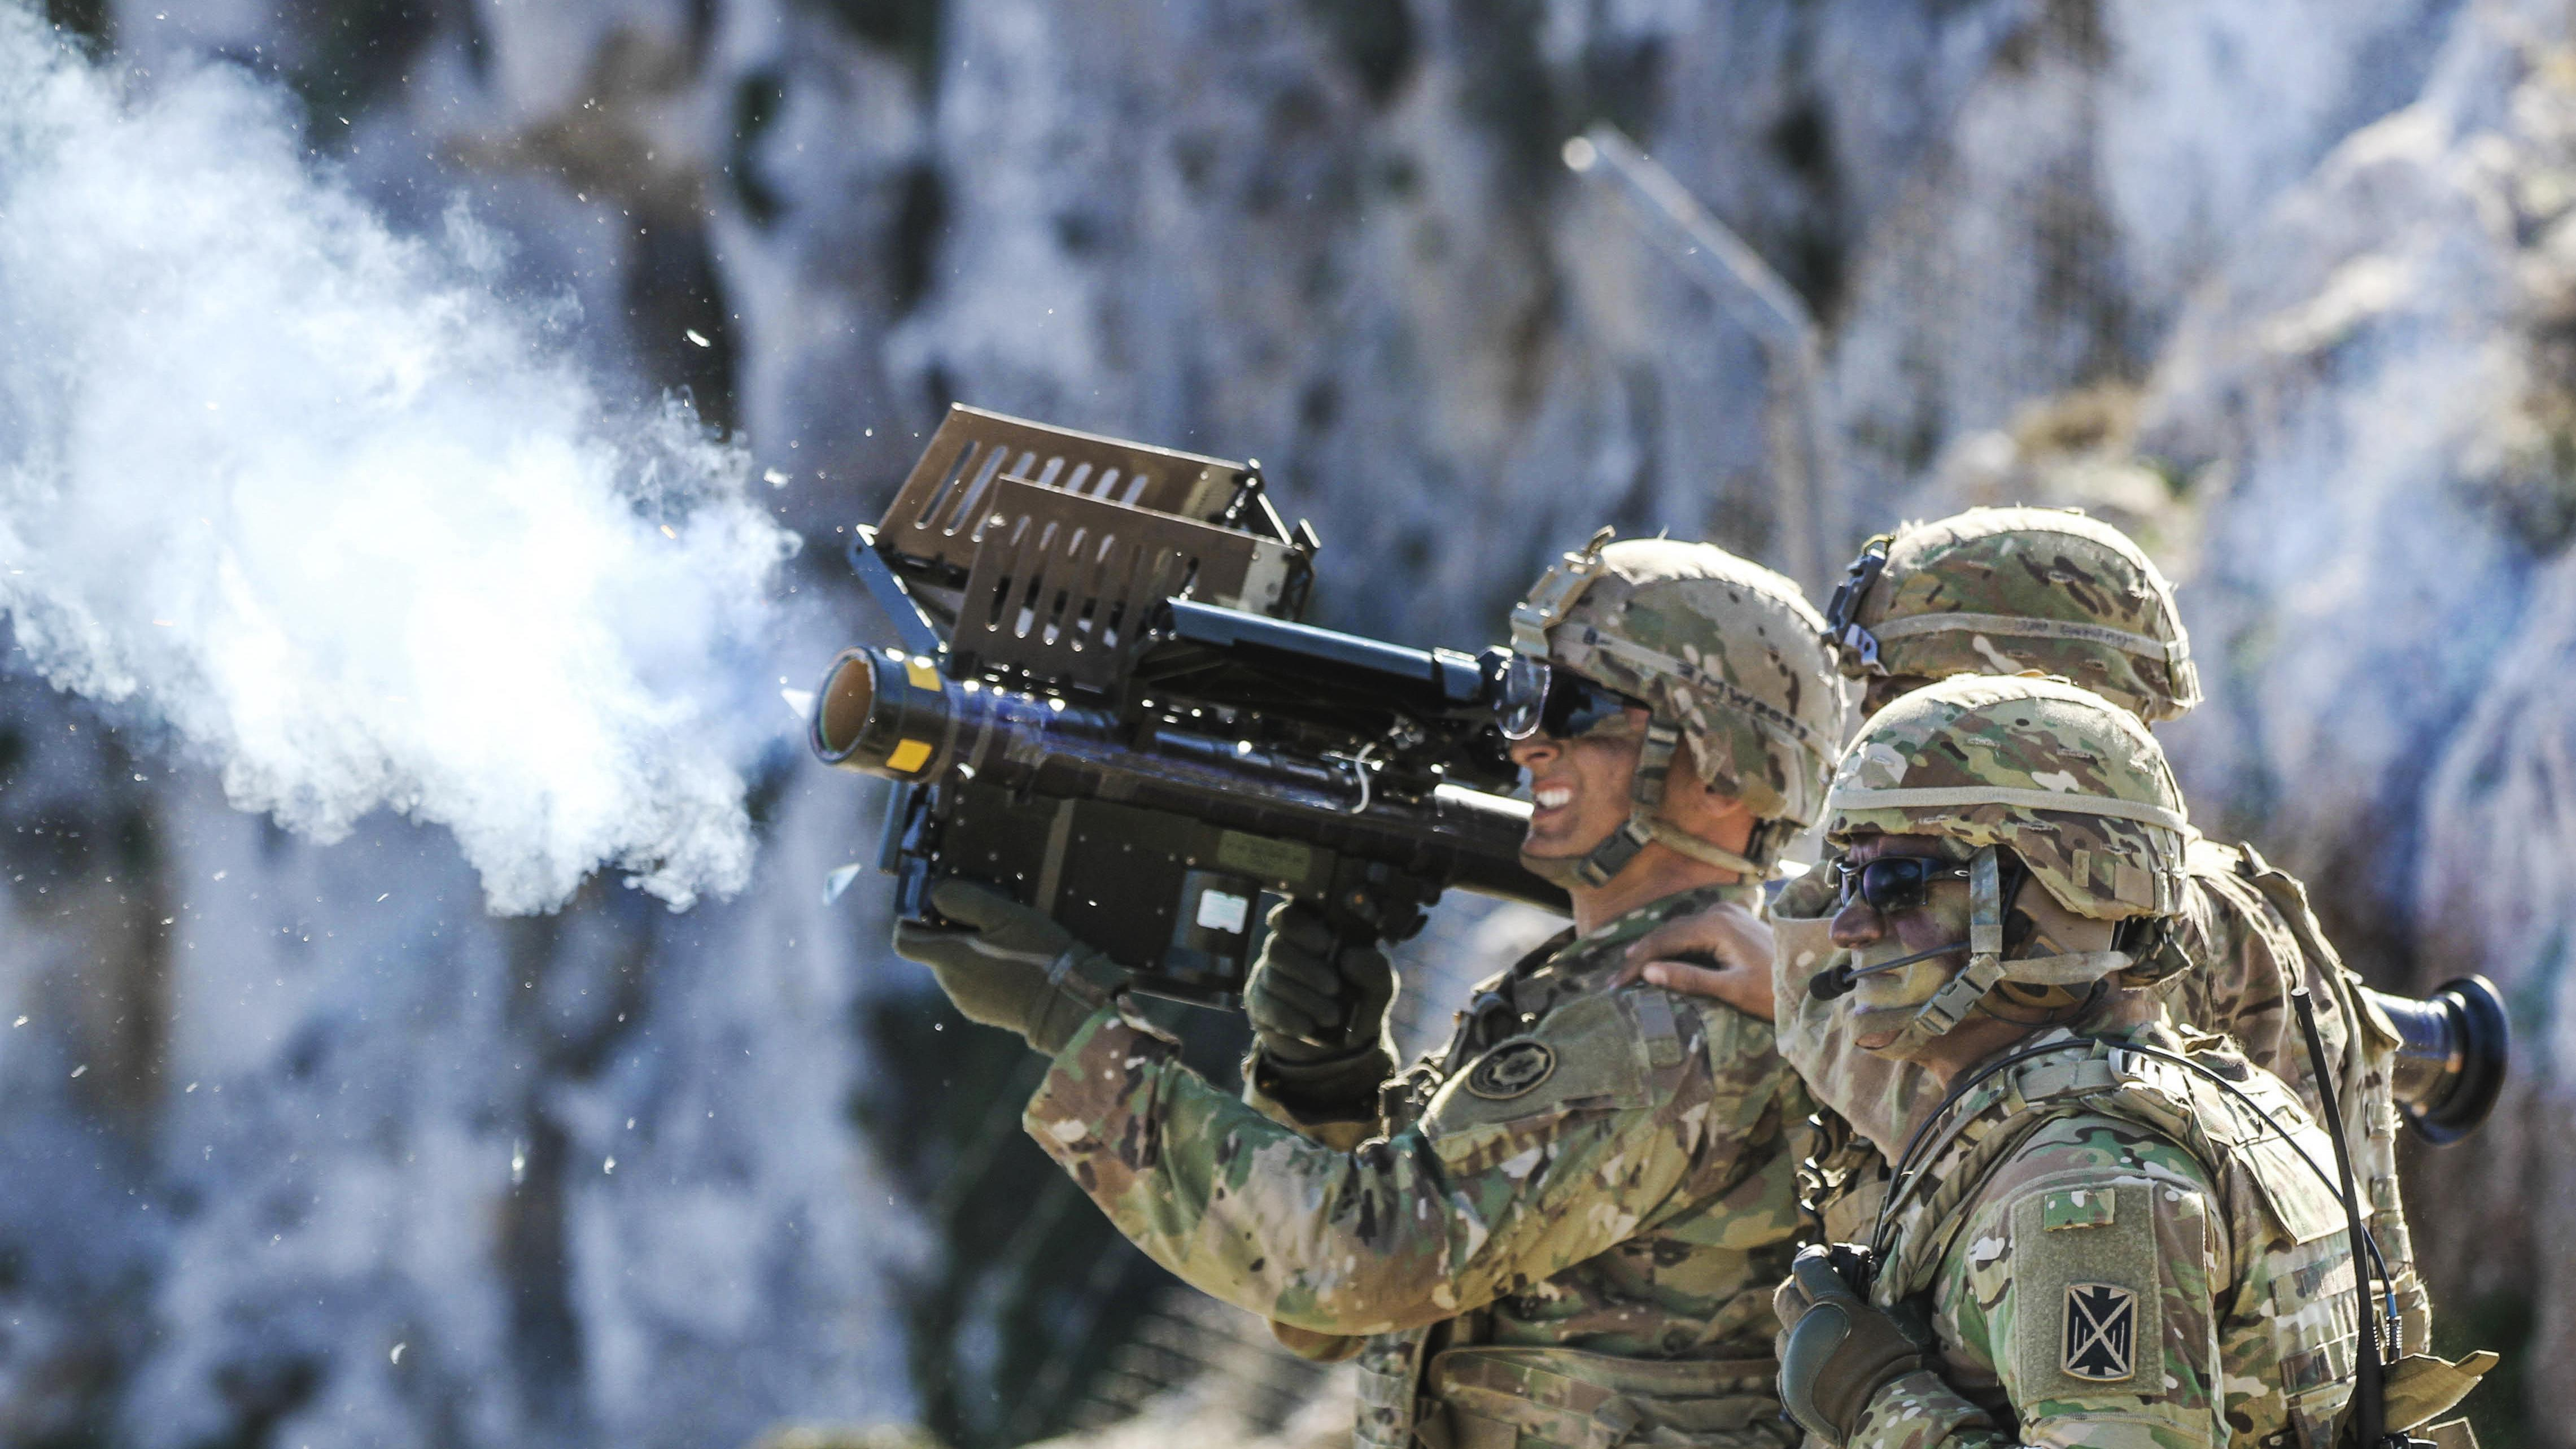 Army Spc. Matthew Williams, a cavalry scout assigned to 2nd Cavalry Regiment, fires a Stinger missile using Man-Portable Air Defense Systems during Artemis Strike, a live fire exercise at the NATO Missile Firing Installation at Crete, Greece. (Sgt. 1st Class Jason Epperson/Army)